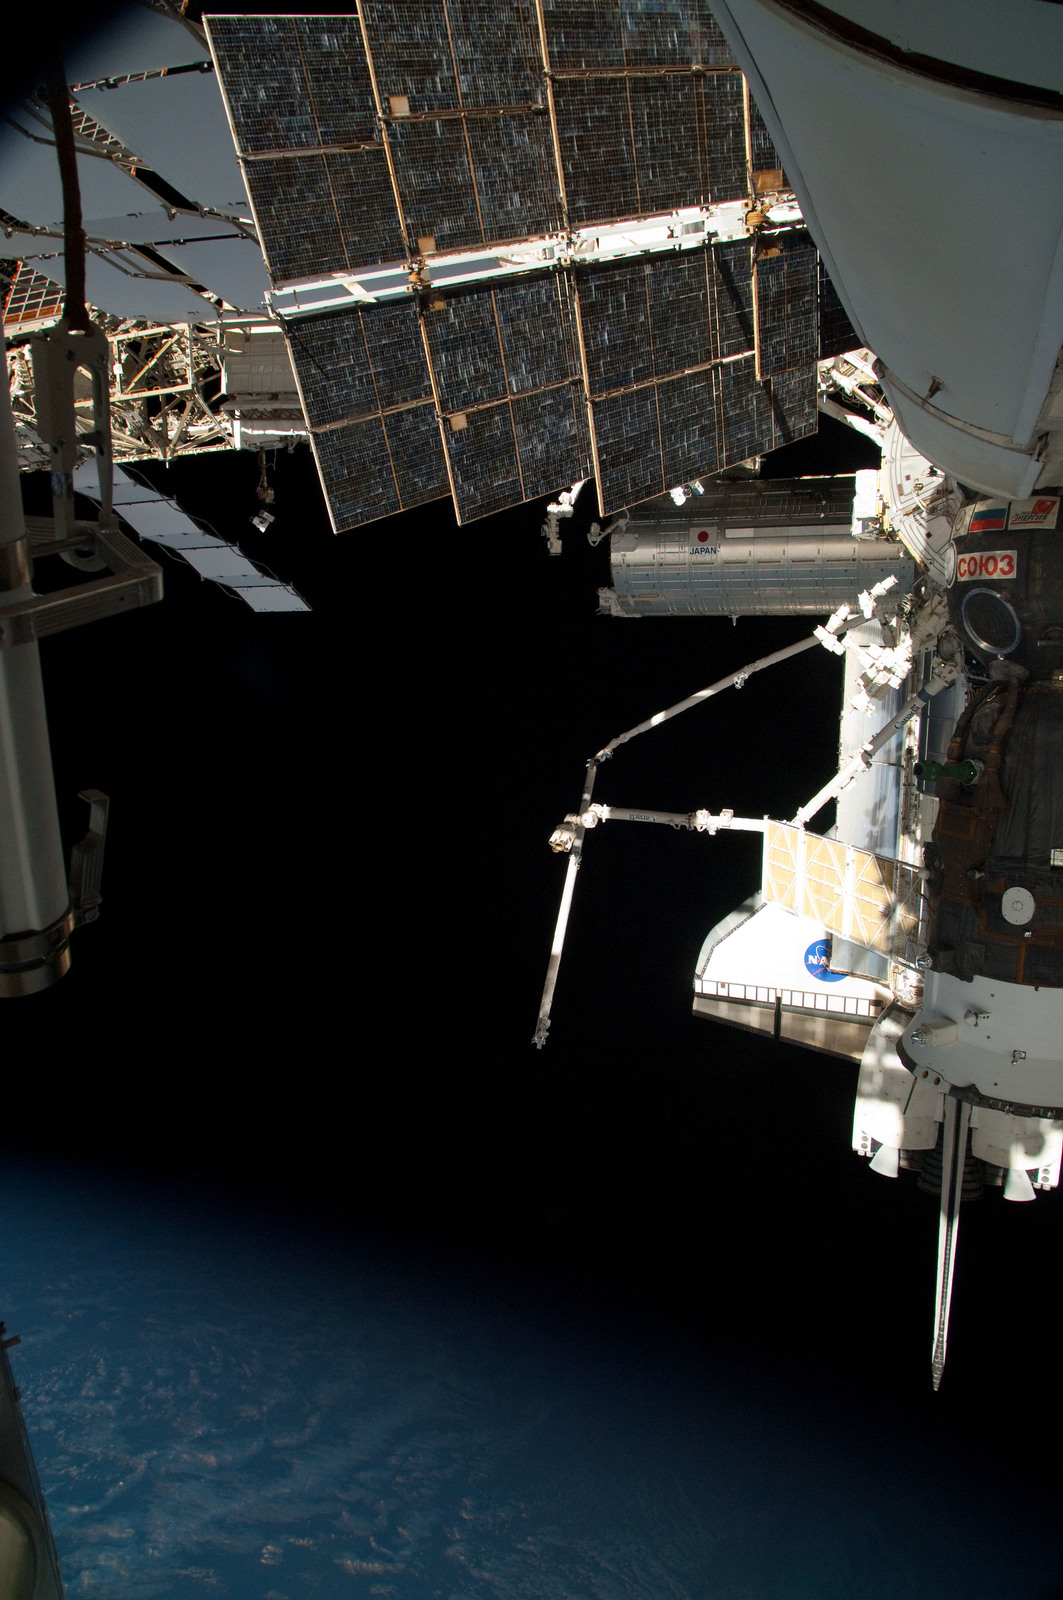 S126E025046 - STS-126 - View of ISS, Docked Soyuz and Endeavour